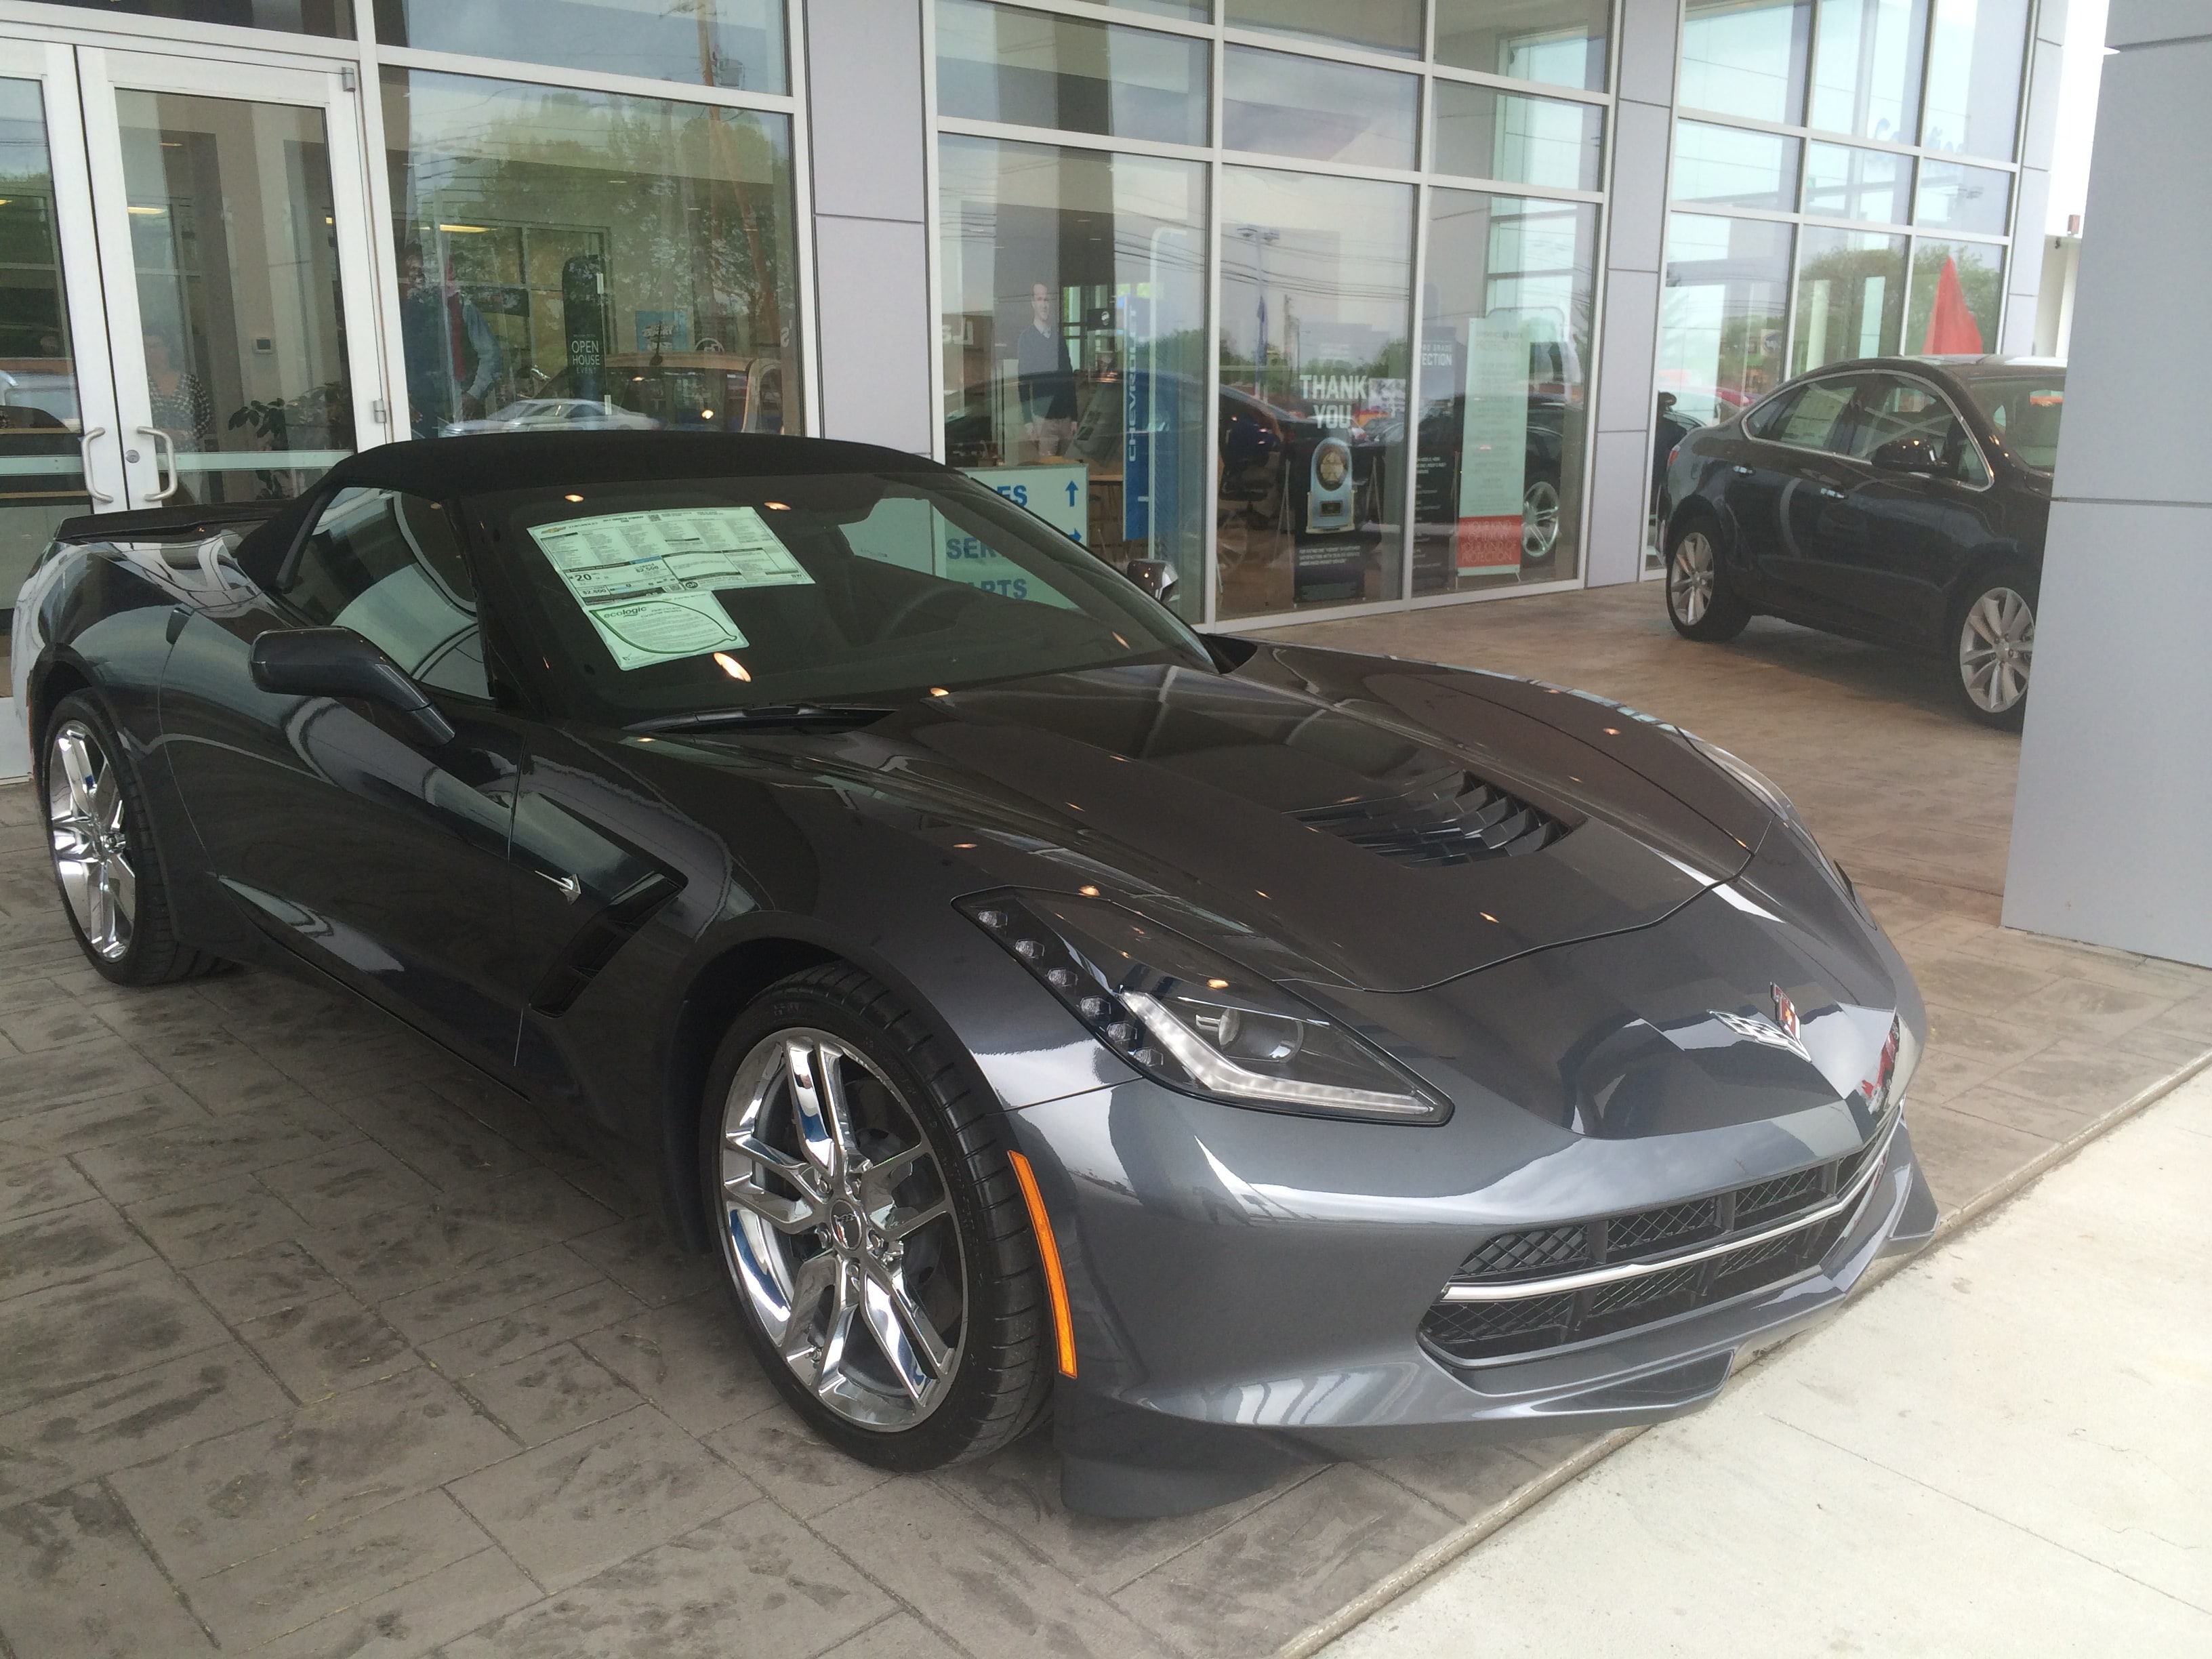 acb4f1ac5db1e40b068c988f80e93bd4x Cool Review About Corvettes for Sale In Md with Extraordinary Images Cars Review